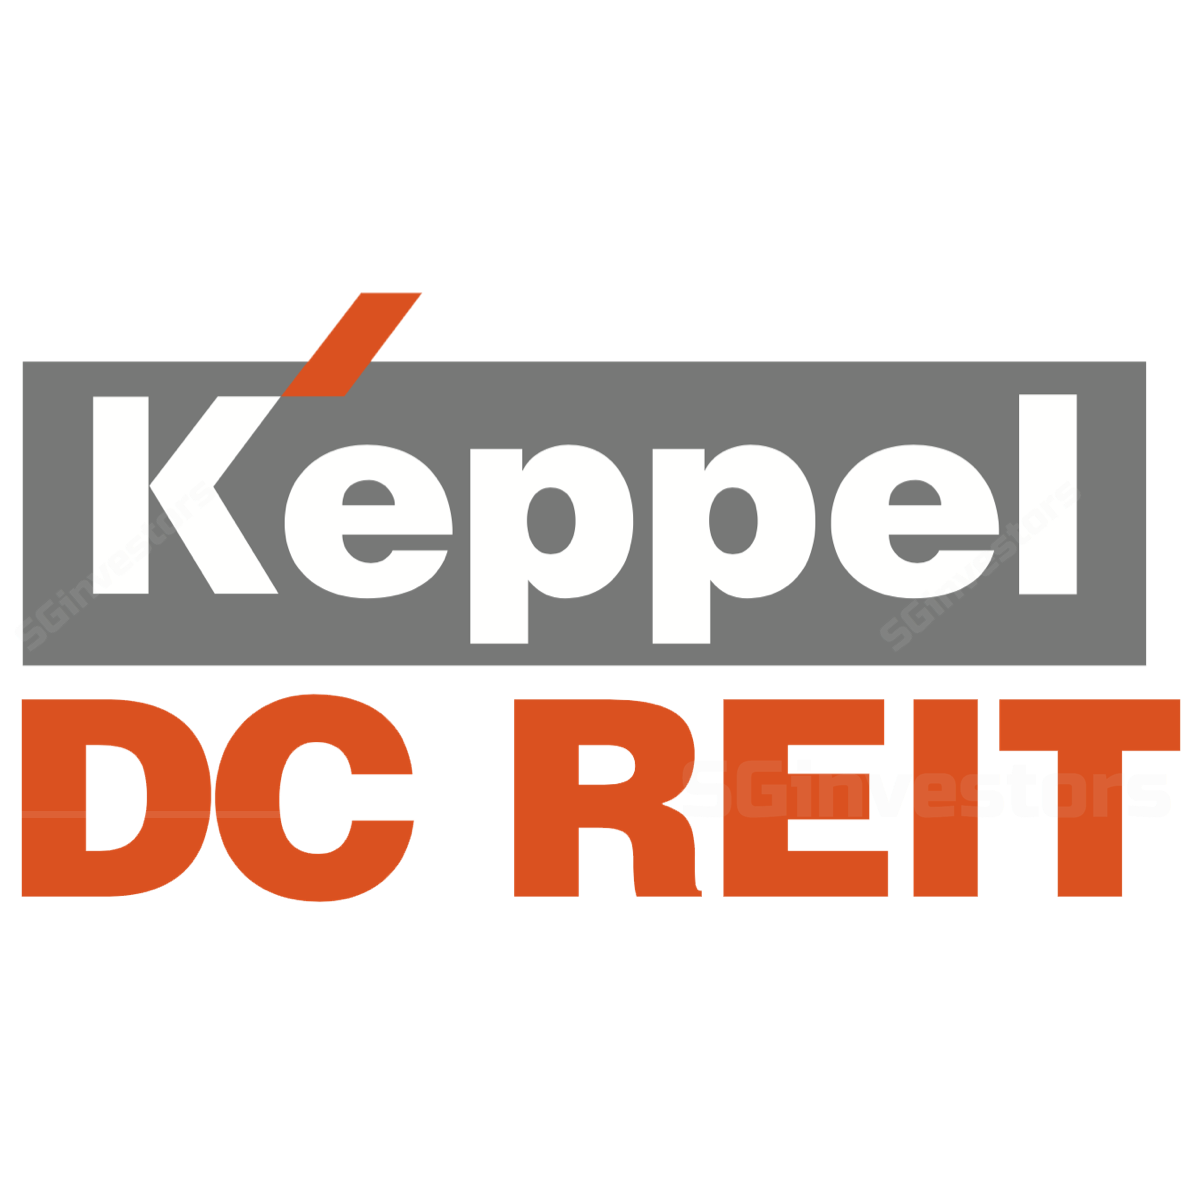 Keppel DC REIT - Phillip Securities 2018-01-23: Lifted By Acquisitions And More To Come